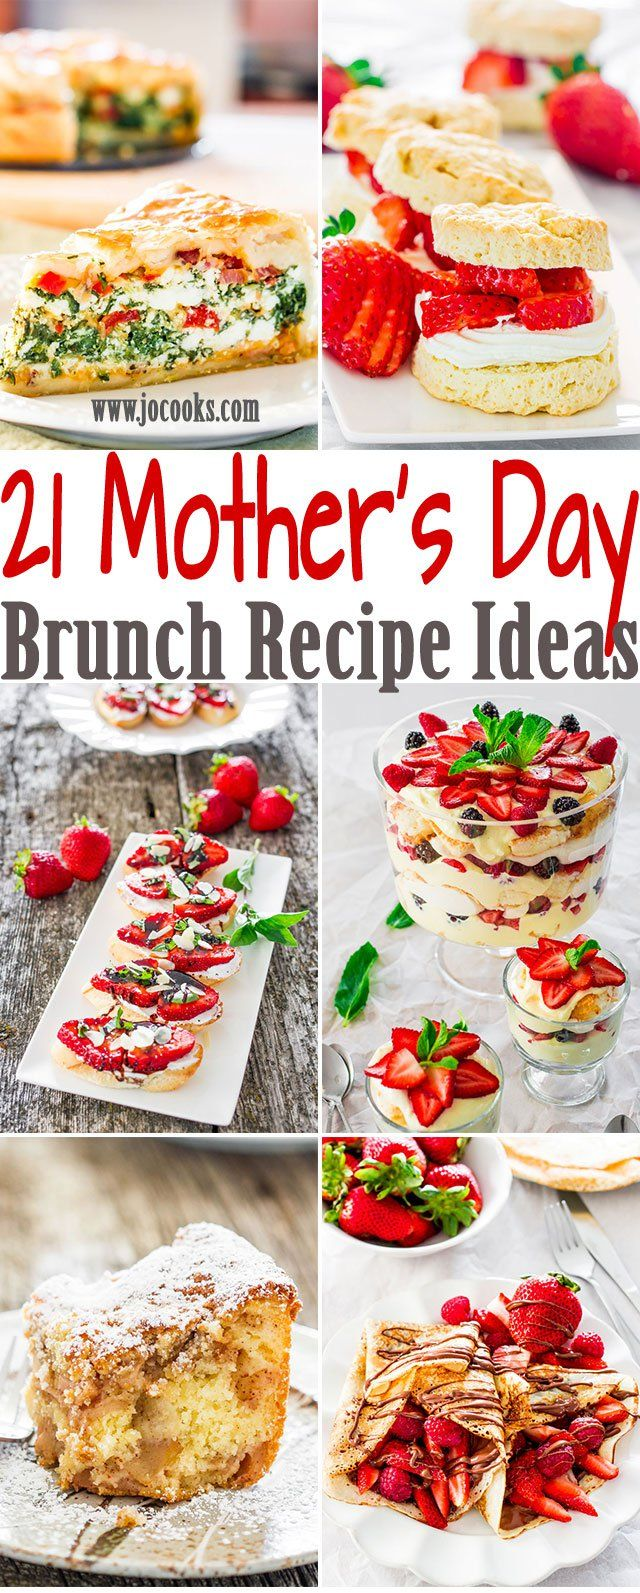 21 Mother S Day Brunch Recipe Ideas Your Mom Would Love A Collection Of Delicious Recipes That Will Absolutely